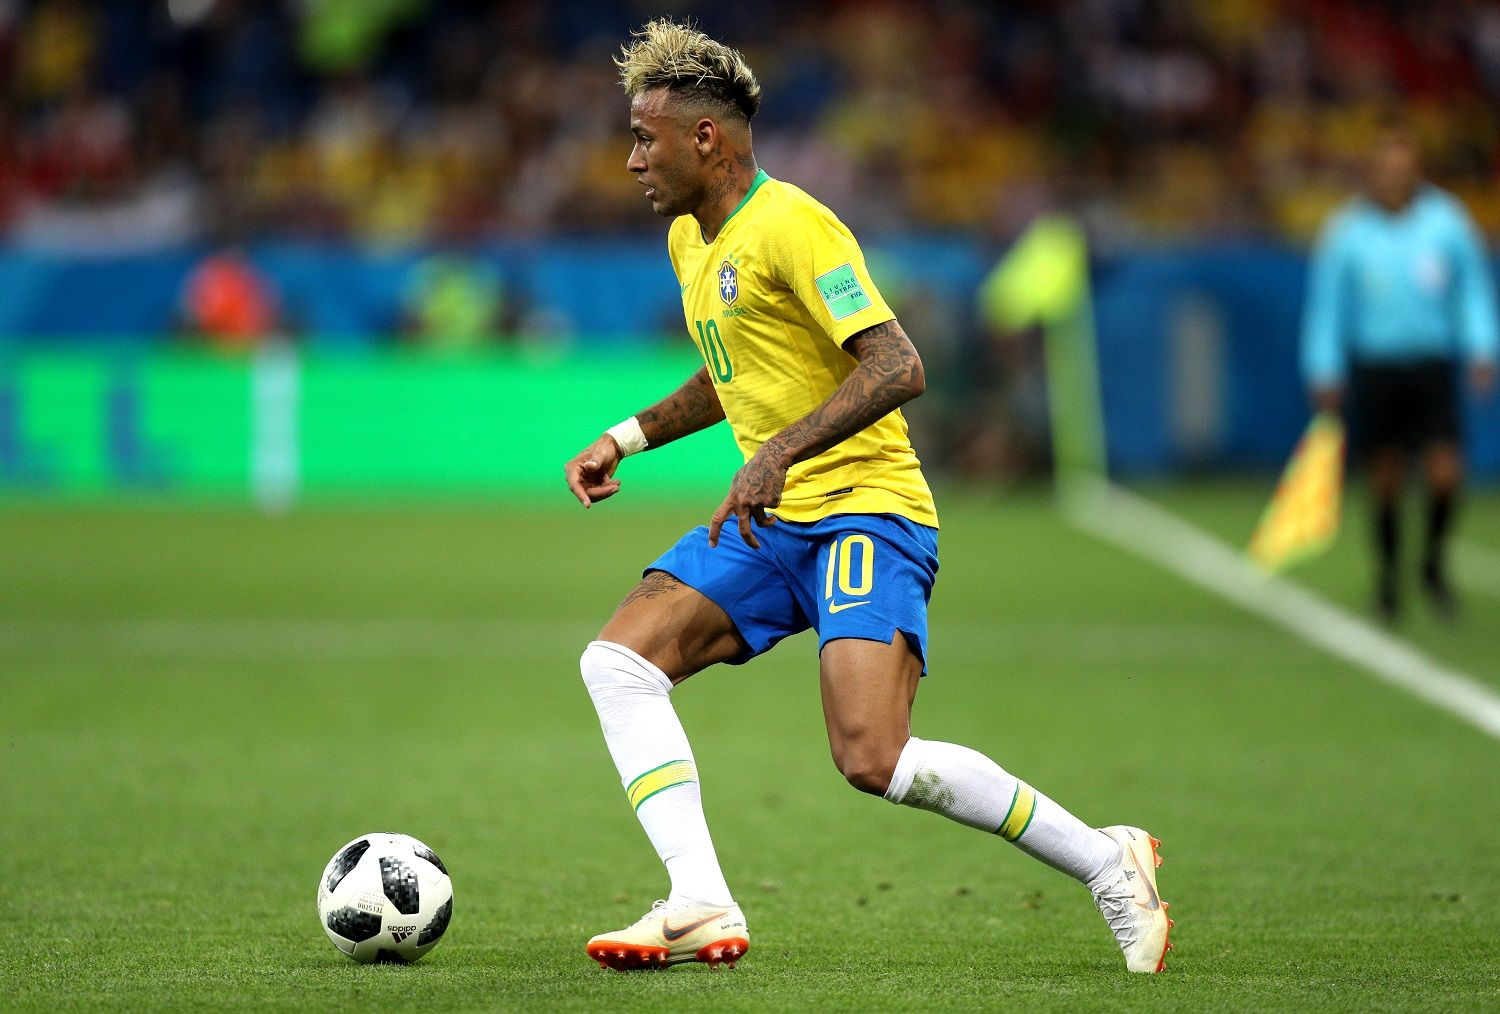 ROSTOV-ON-DON, RUSSIA - JUNE 17:  Neymar Jr of Brazil during the 2018 FIFA World Cup Russia group E match between Brazil and Switzerland at Rostov Arena on June 17, 2018 in Rostov-on-Don, Russia.  (Photo by Buda Mendes/Getty Images)